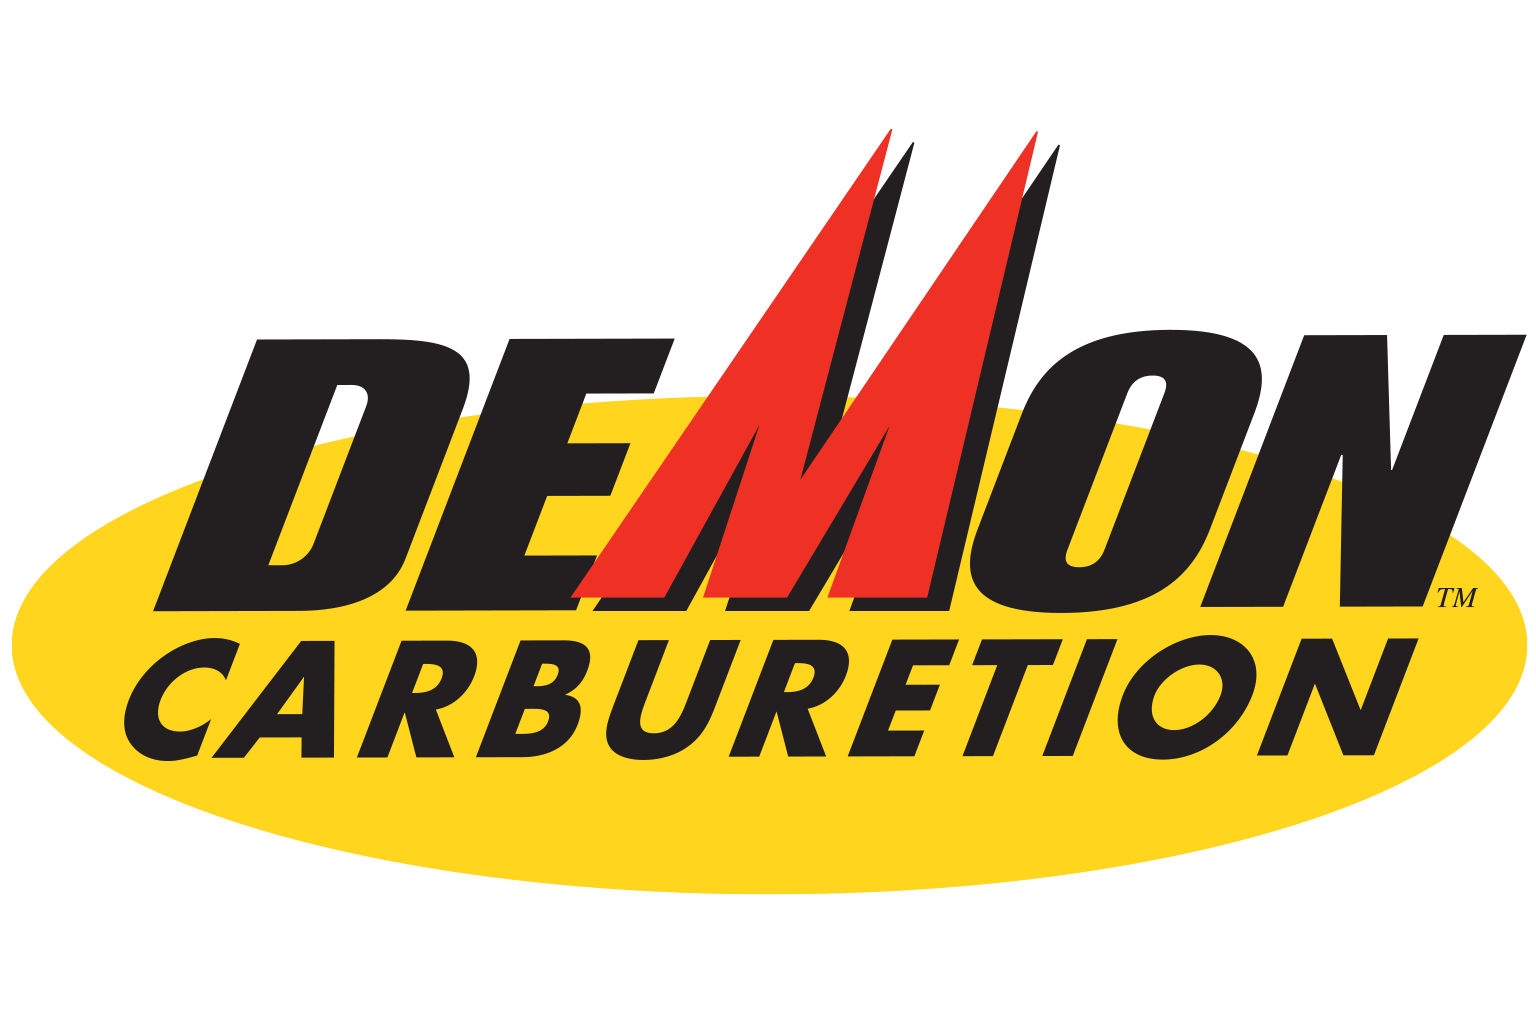 Demon Carburetion